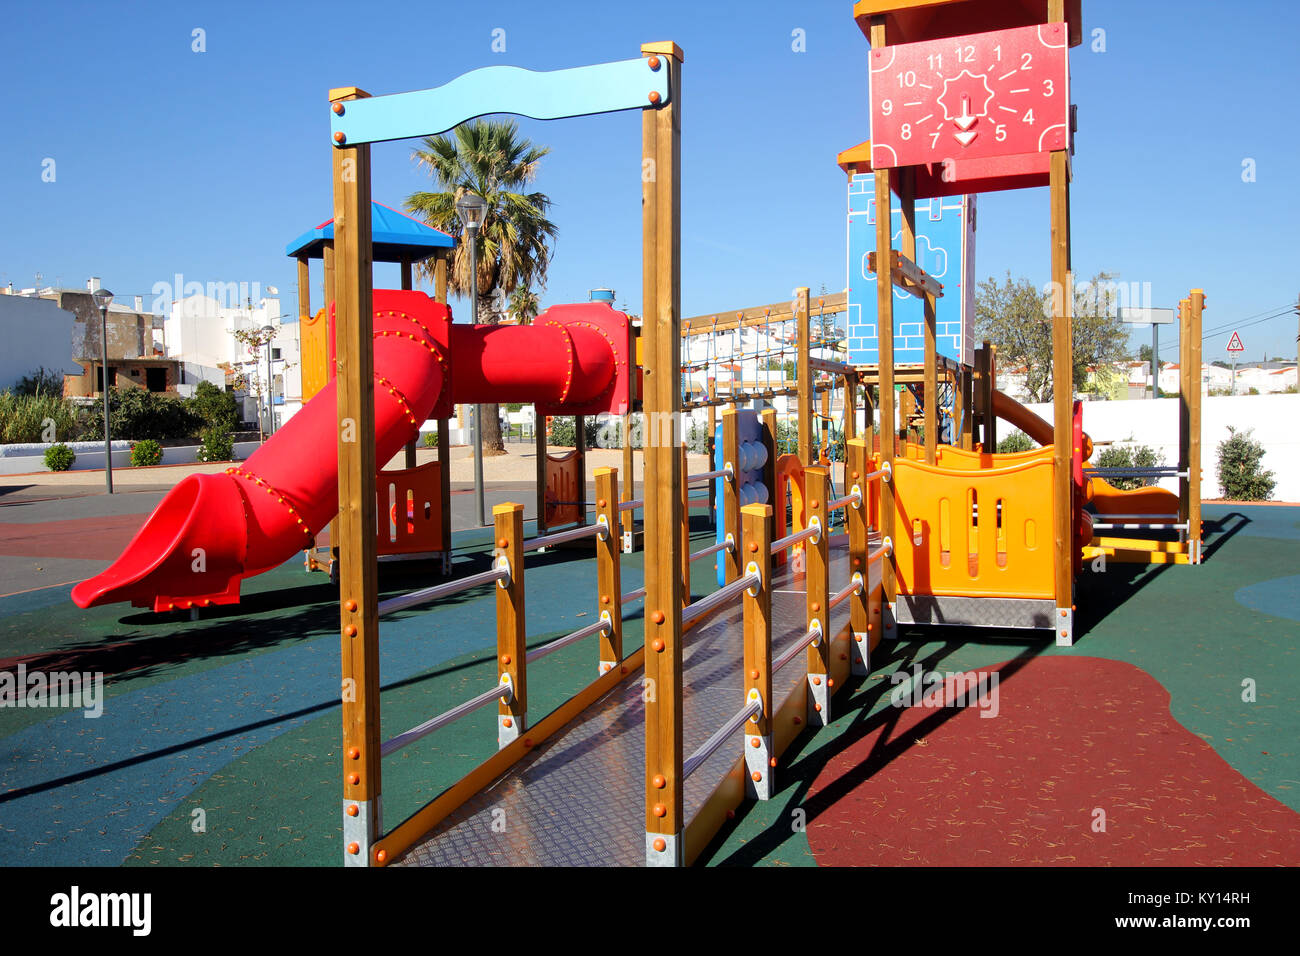 Deserted playground with tunnels, towers, and climbing frames - Stock Image